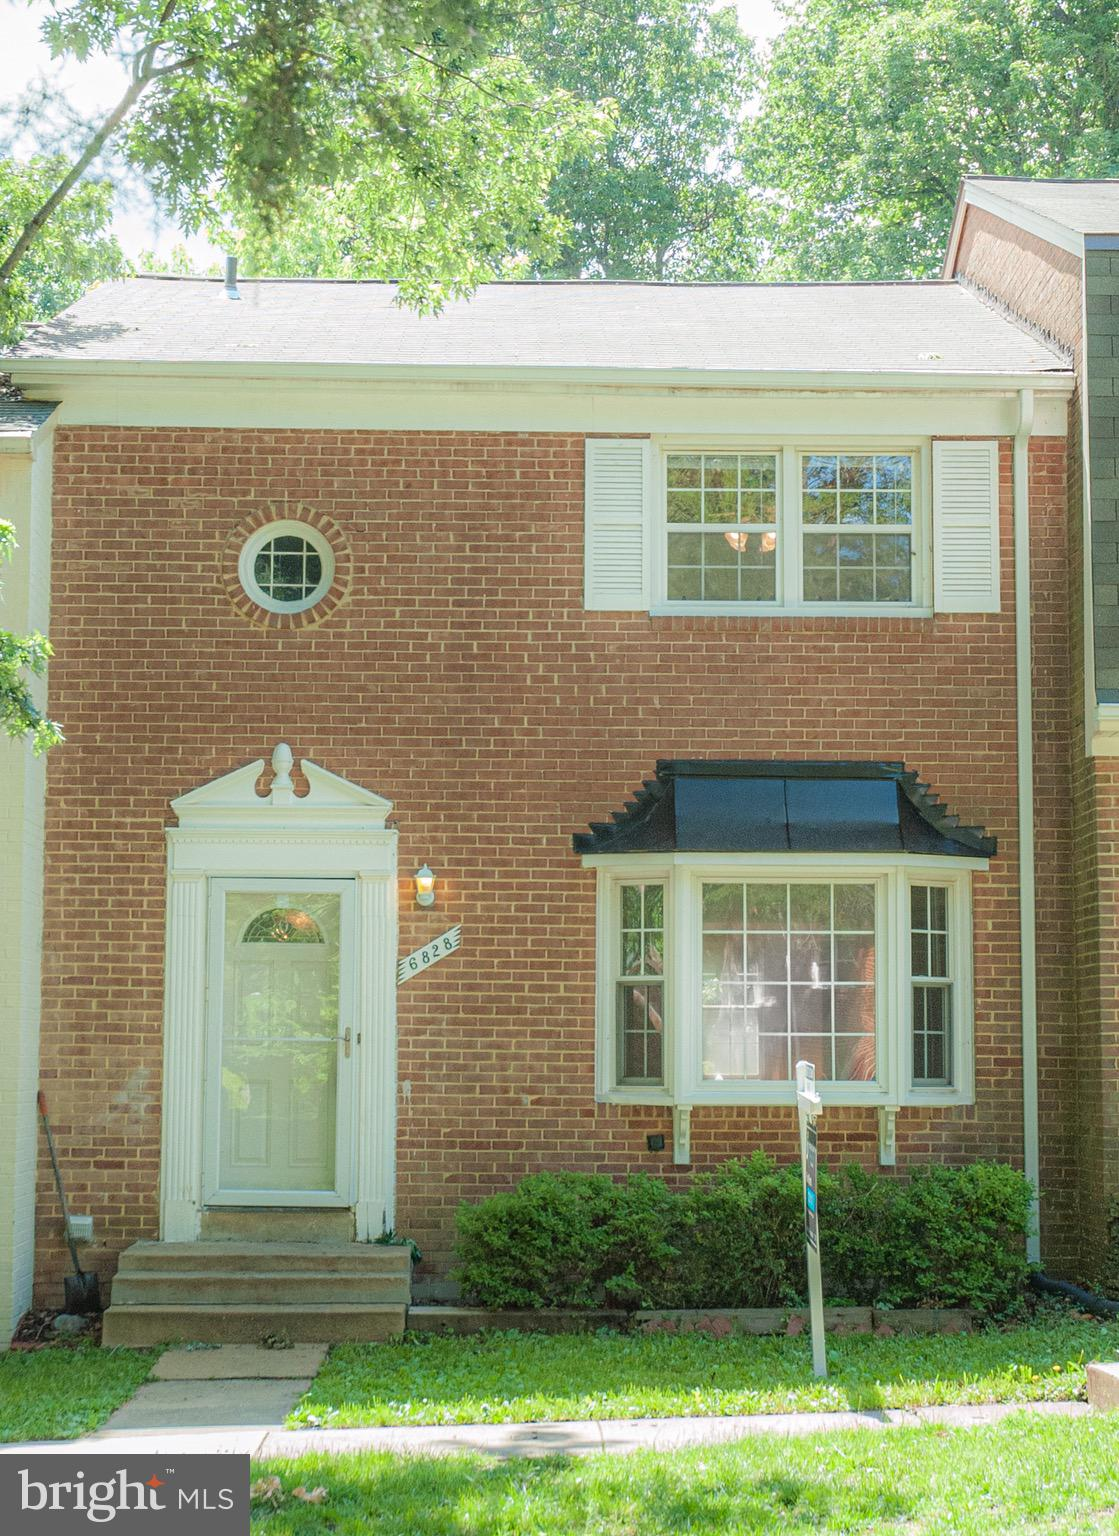 Located in West Springfield.  All brick 3 bedrooms 3.5 bathrooms townhome in sought out Orange Hunt Community. New Roof, less than one year with 20 year warranty. Community playground in backyard.  Close to shopping areas, commuter lots and bus stops.  Minutes away from Fairfax County Parkway, I-95 and I-66.